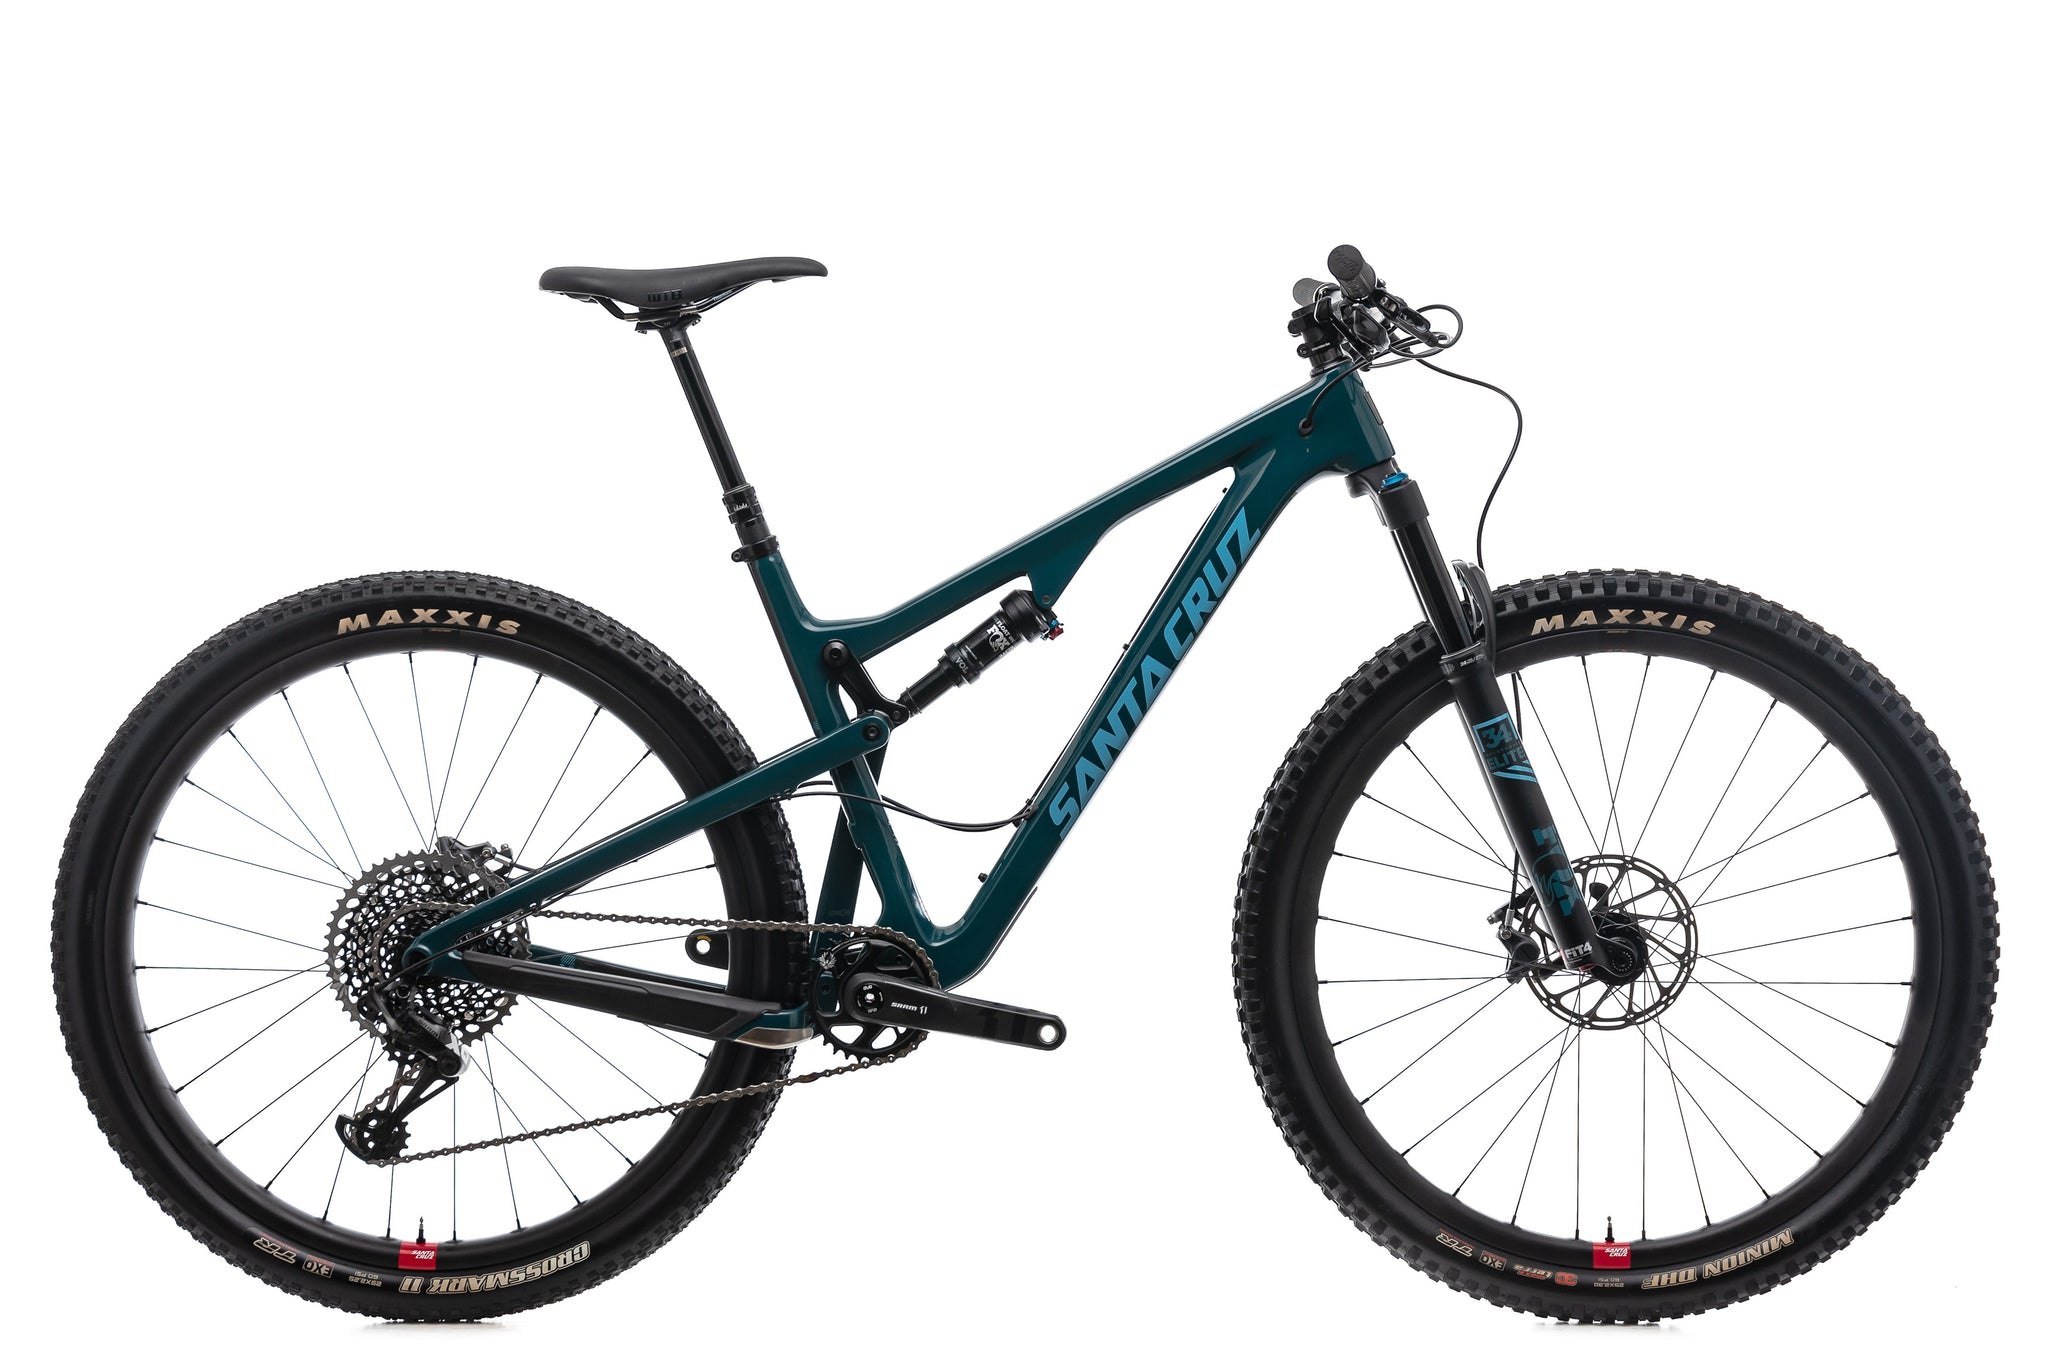 Santa Cruz Tallboy Used Mountain Bike